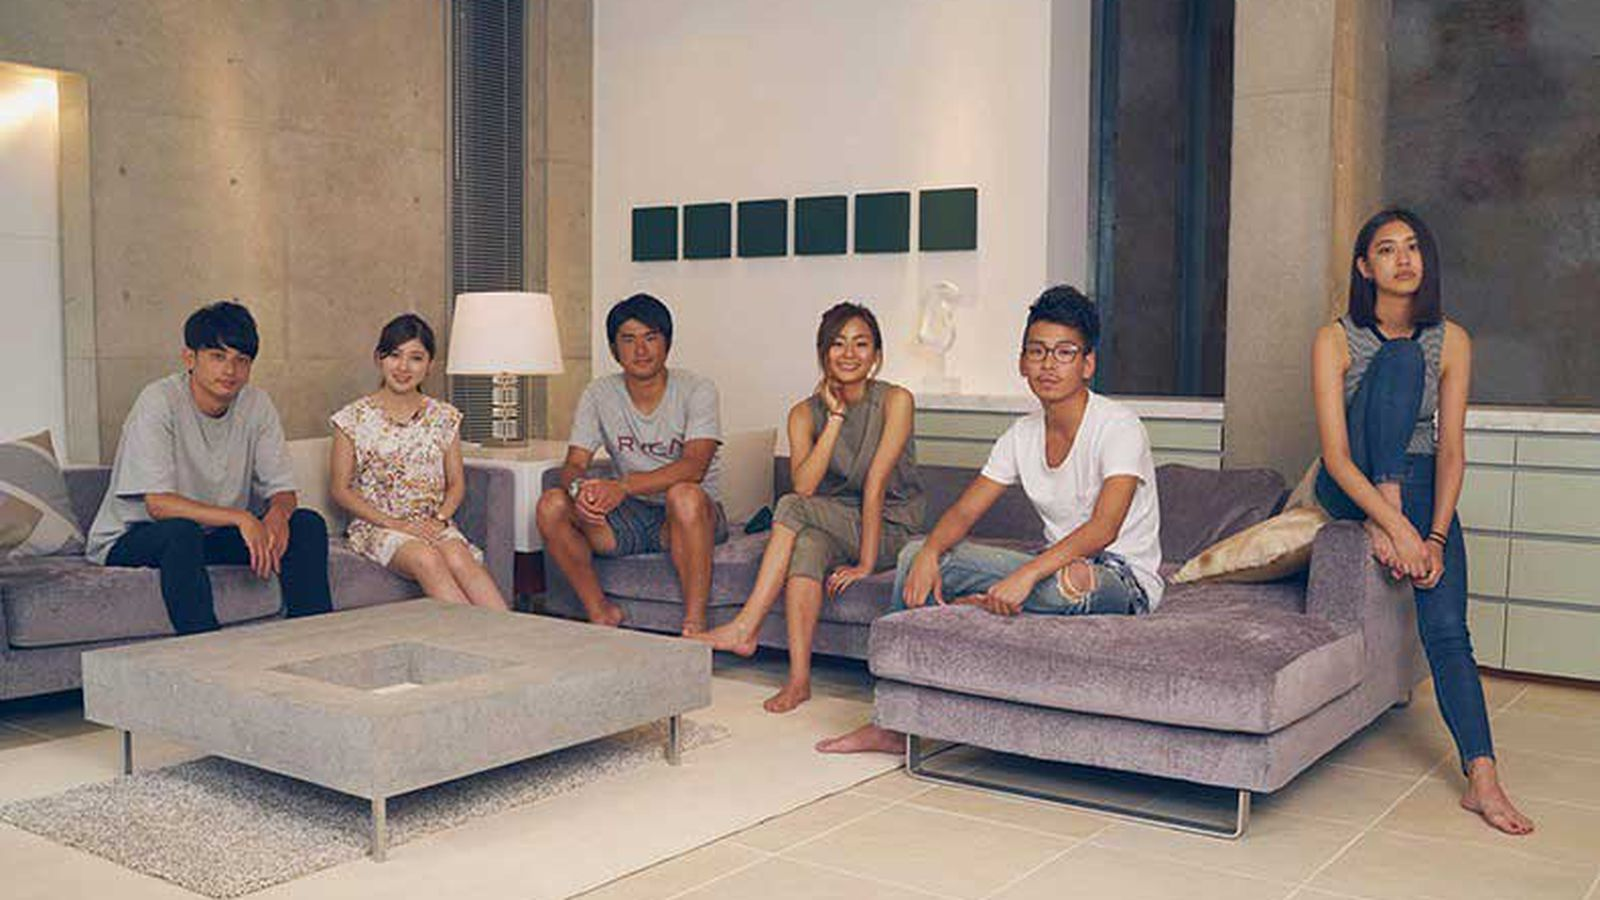 netflix 39 s terrace house finds meaning in mundane human ForTerrace House Reality Show